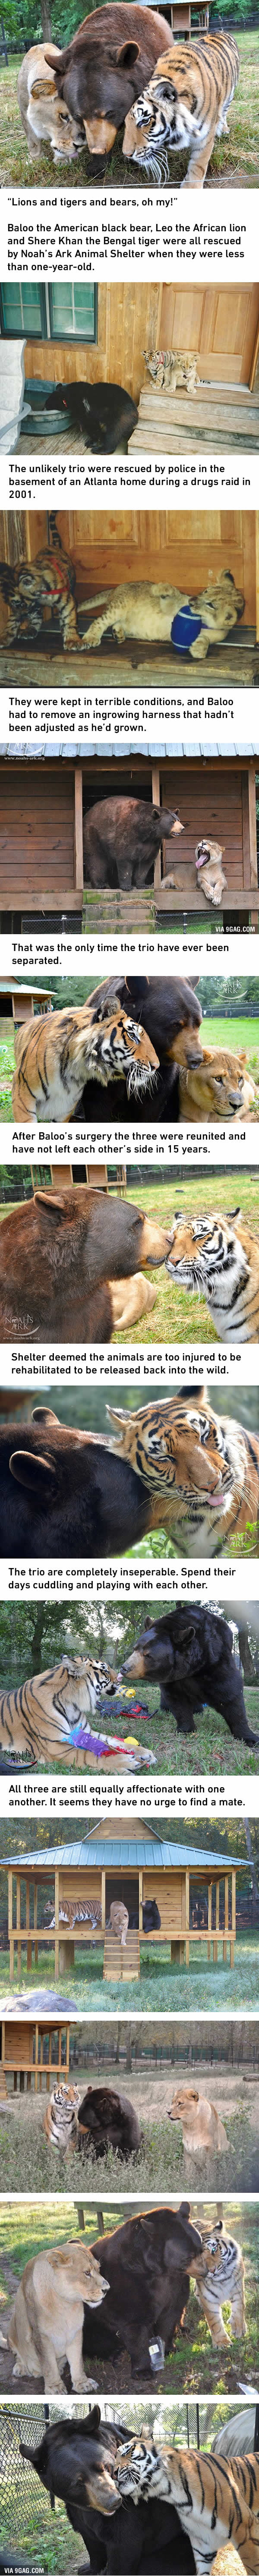 Tiger, Lion And Bear, Oh My! The Unlikely Trio Are Best Friends For 15 Years